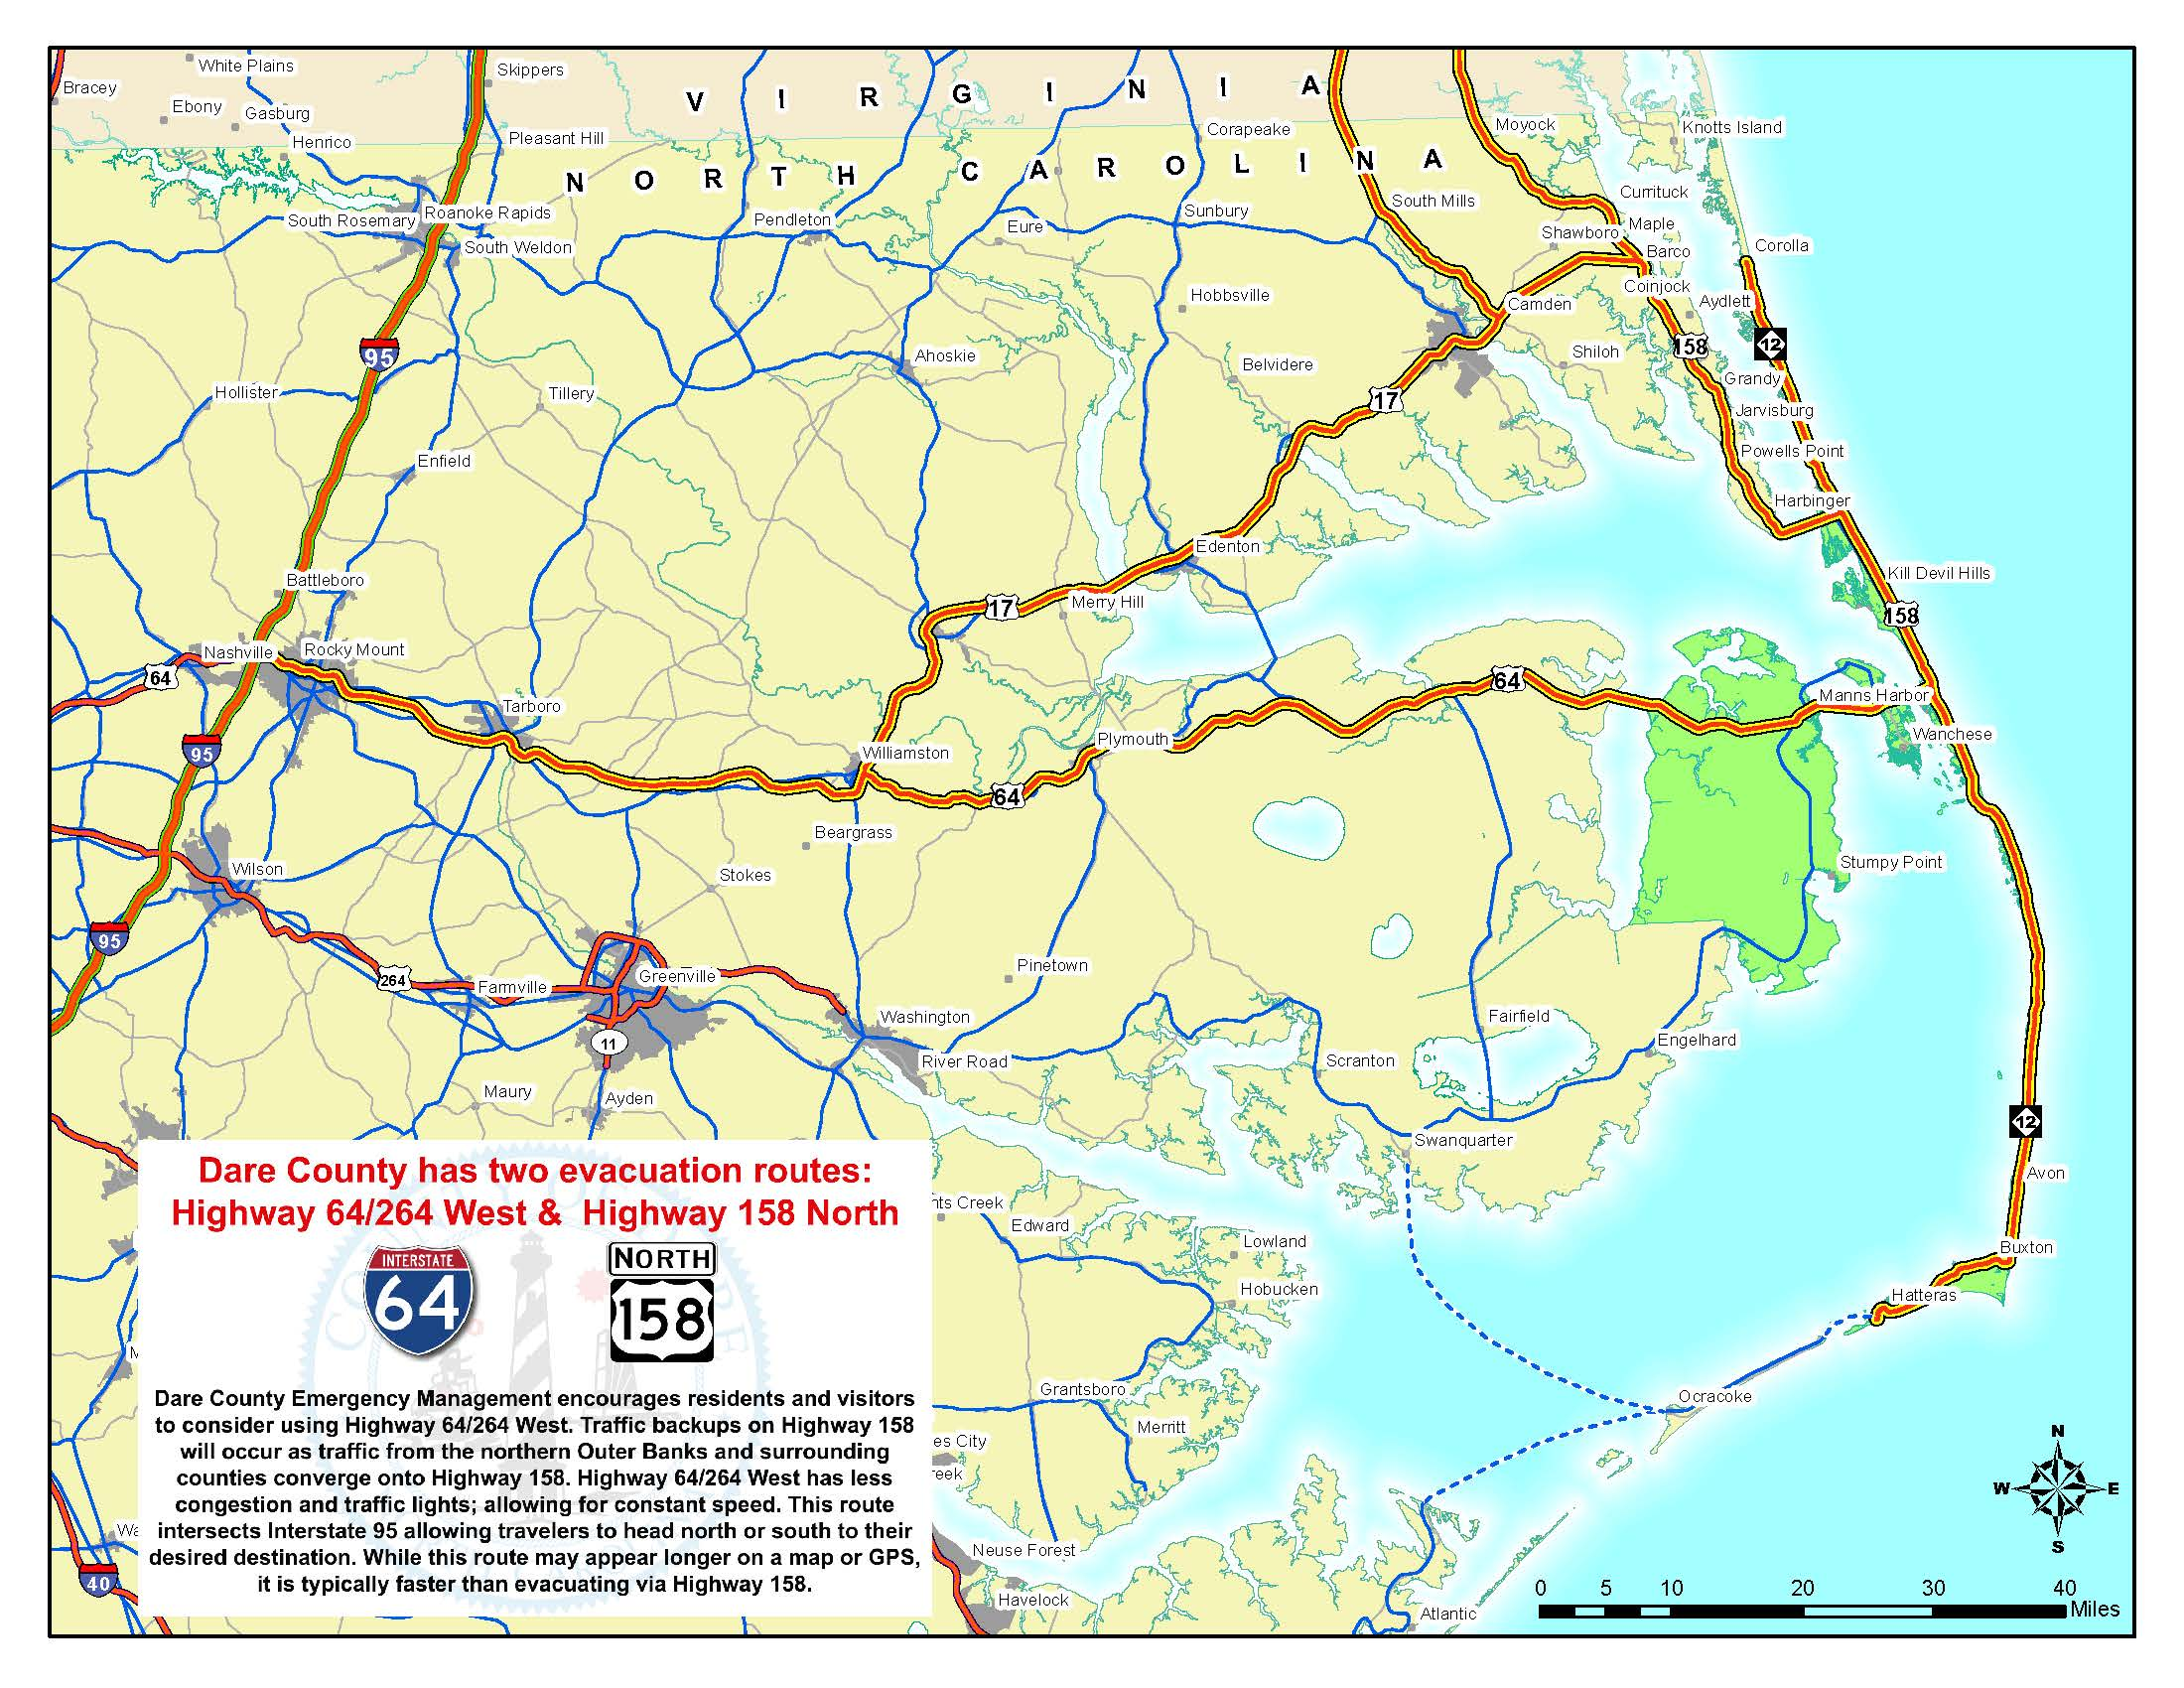 Dare County Evacuation Routes